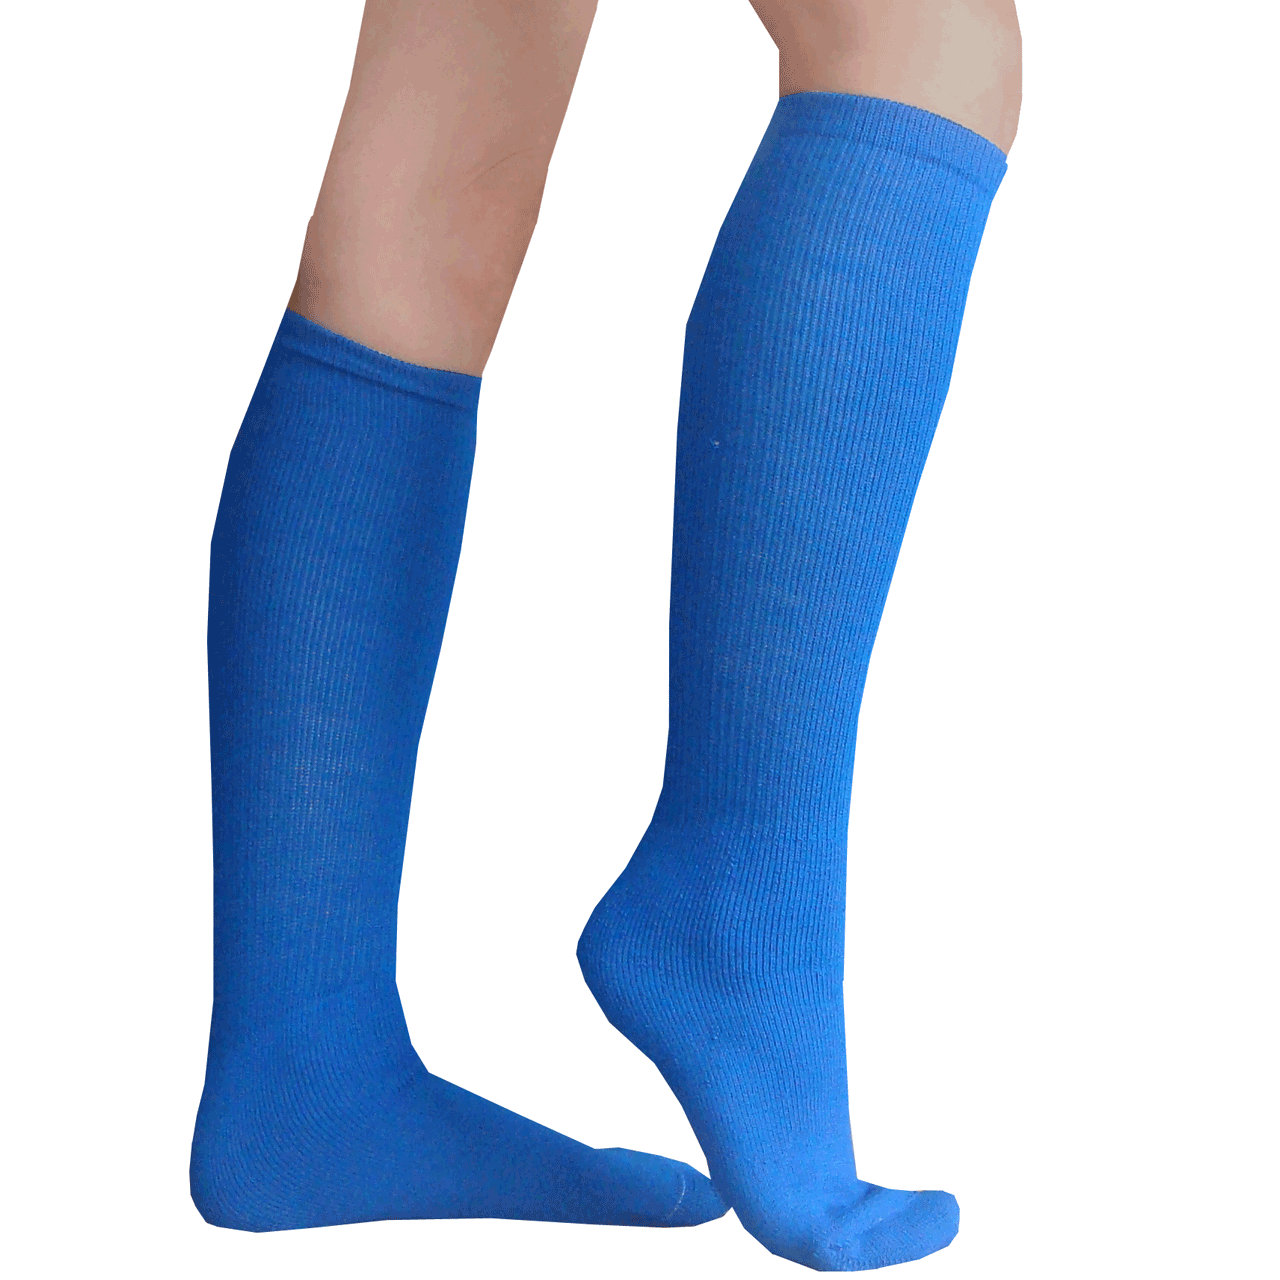 Blue Socks With Black Shoes